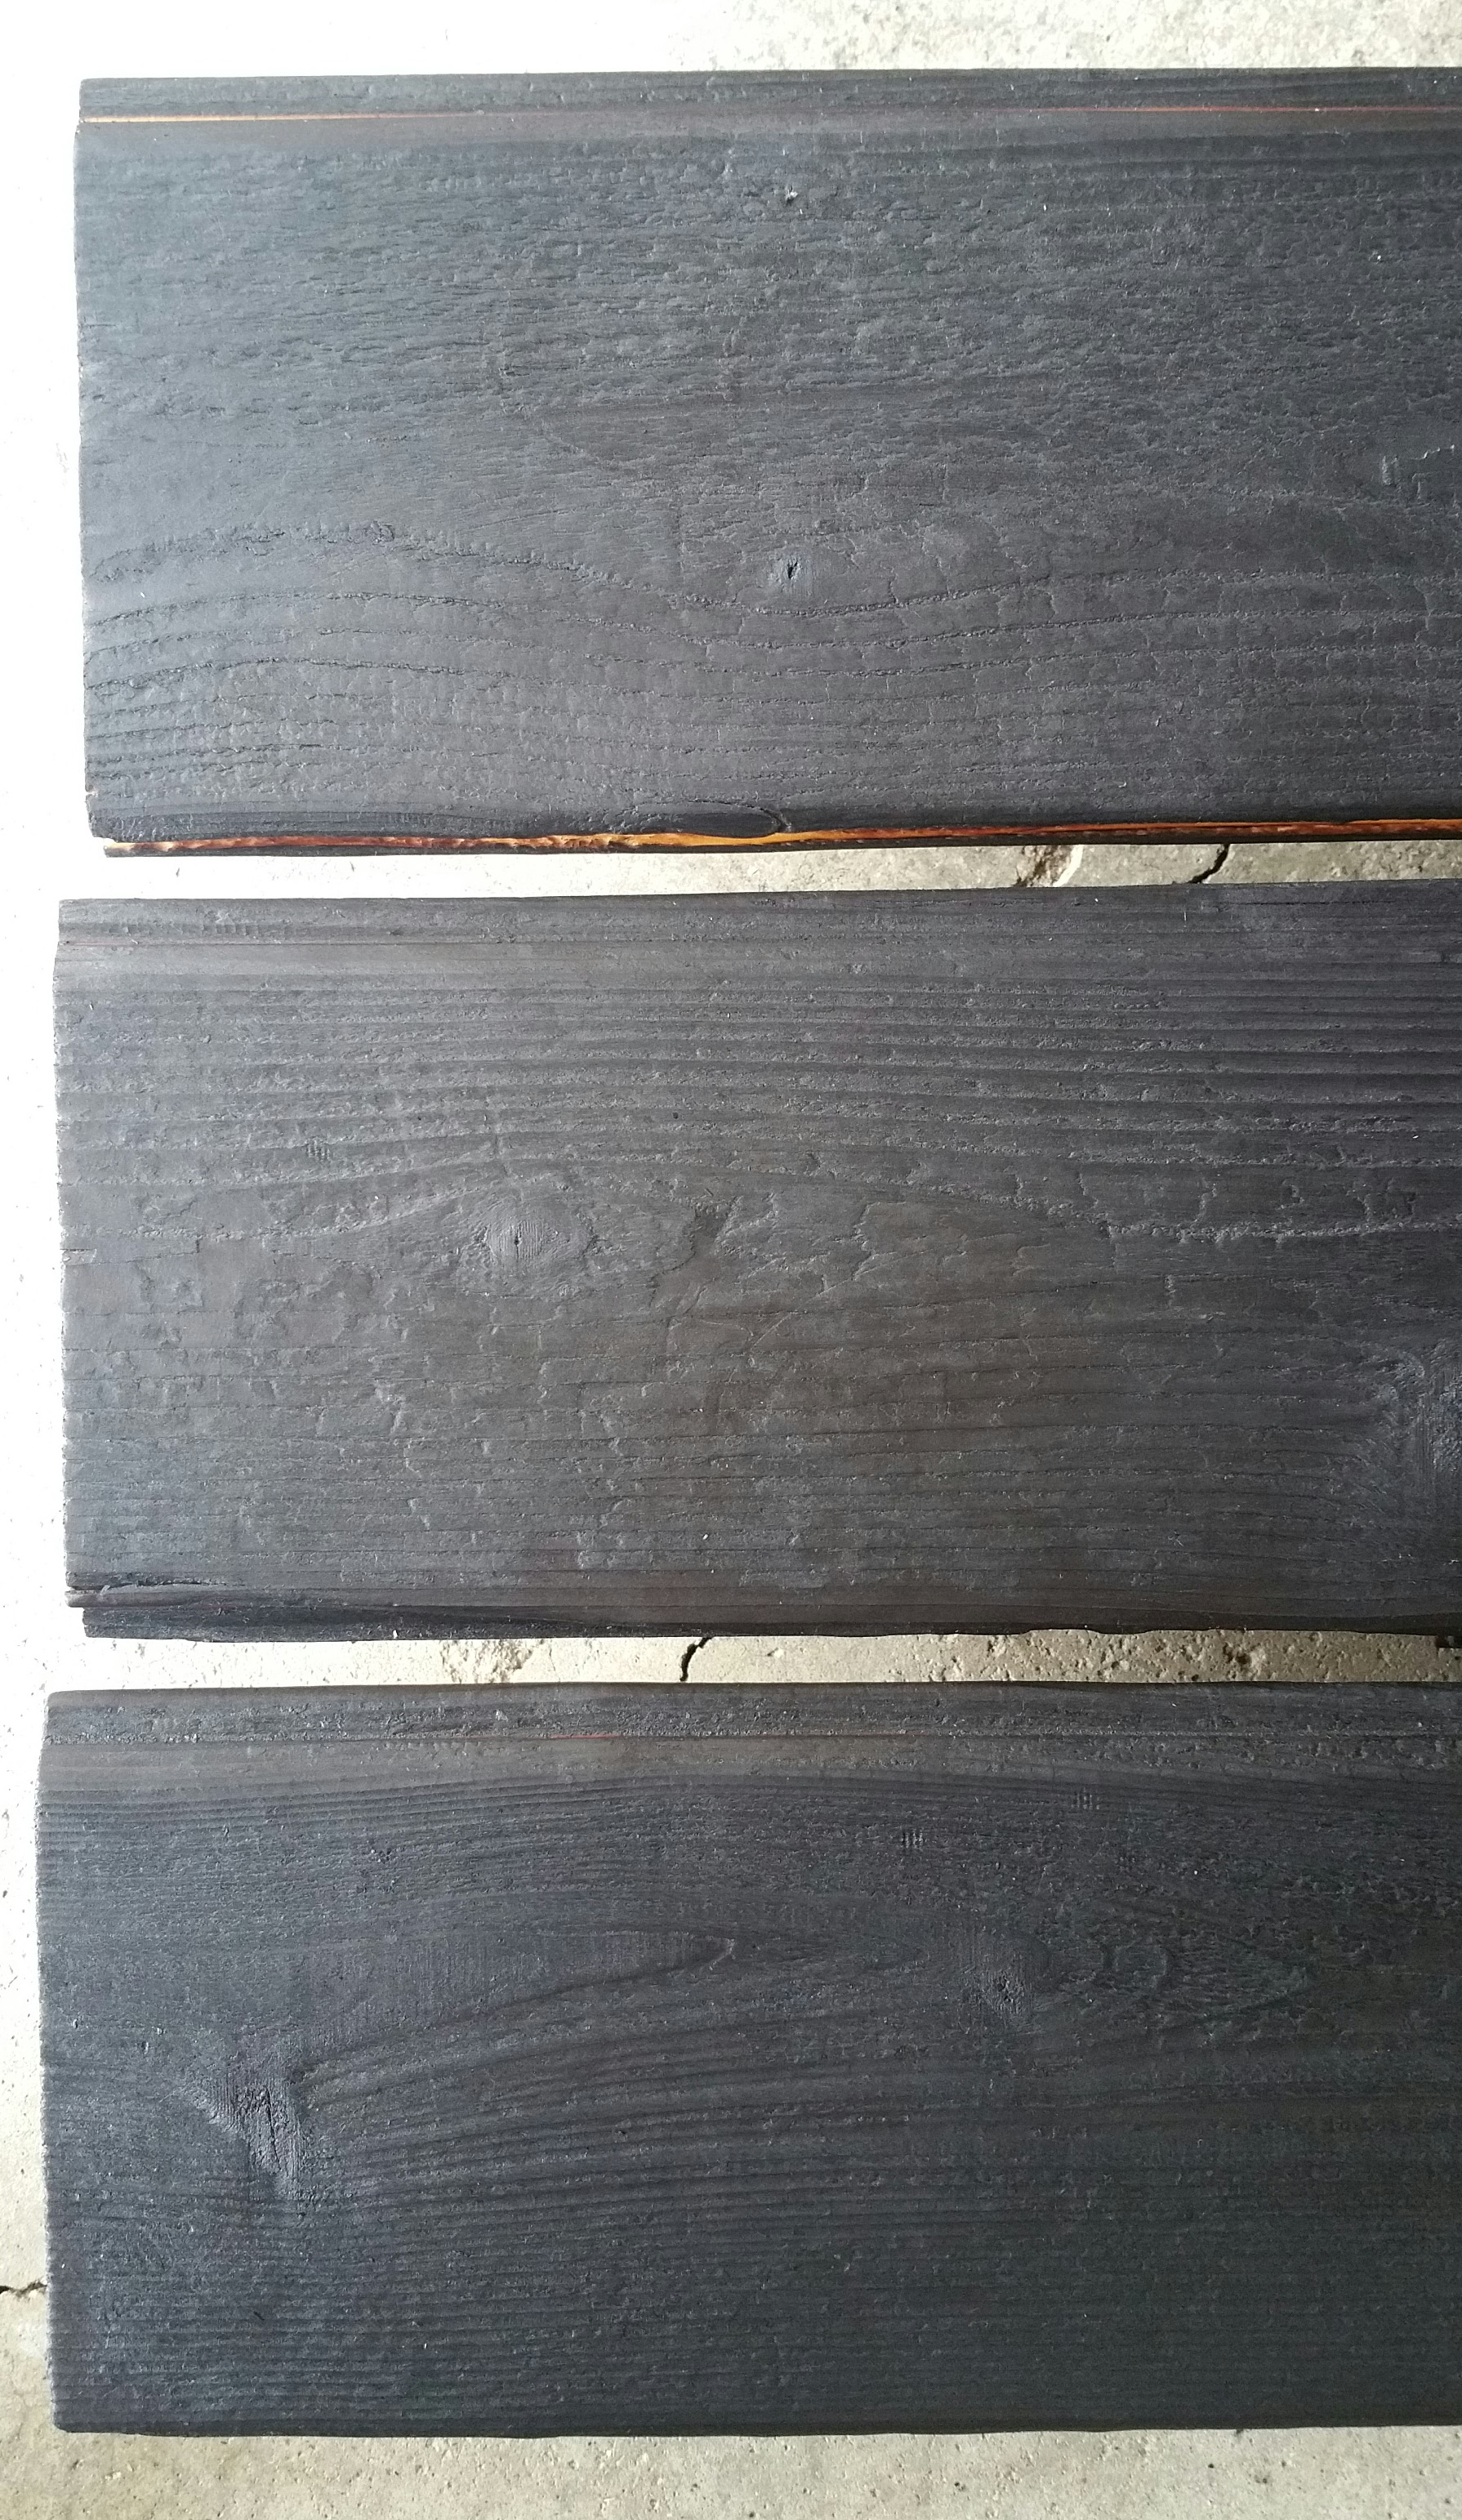 oiled-charred-boards-on-the-stack-to-dry